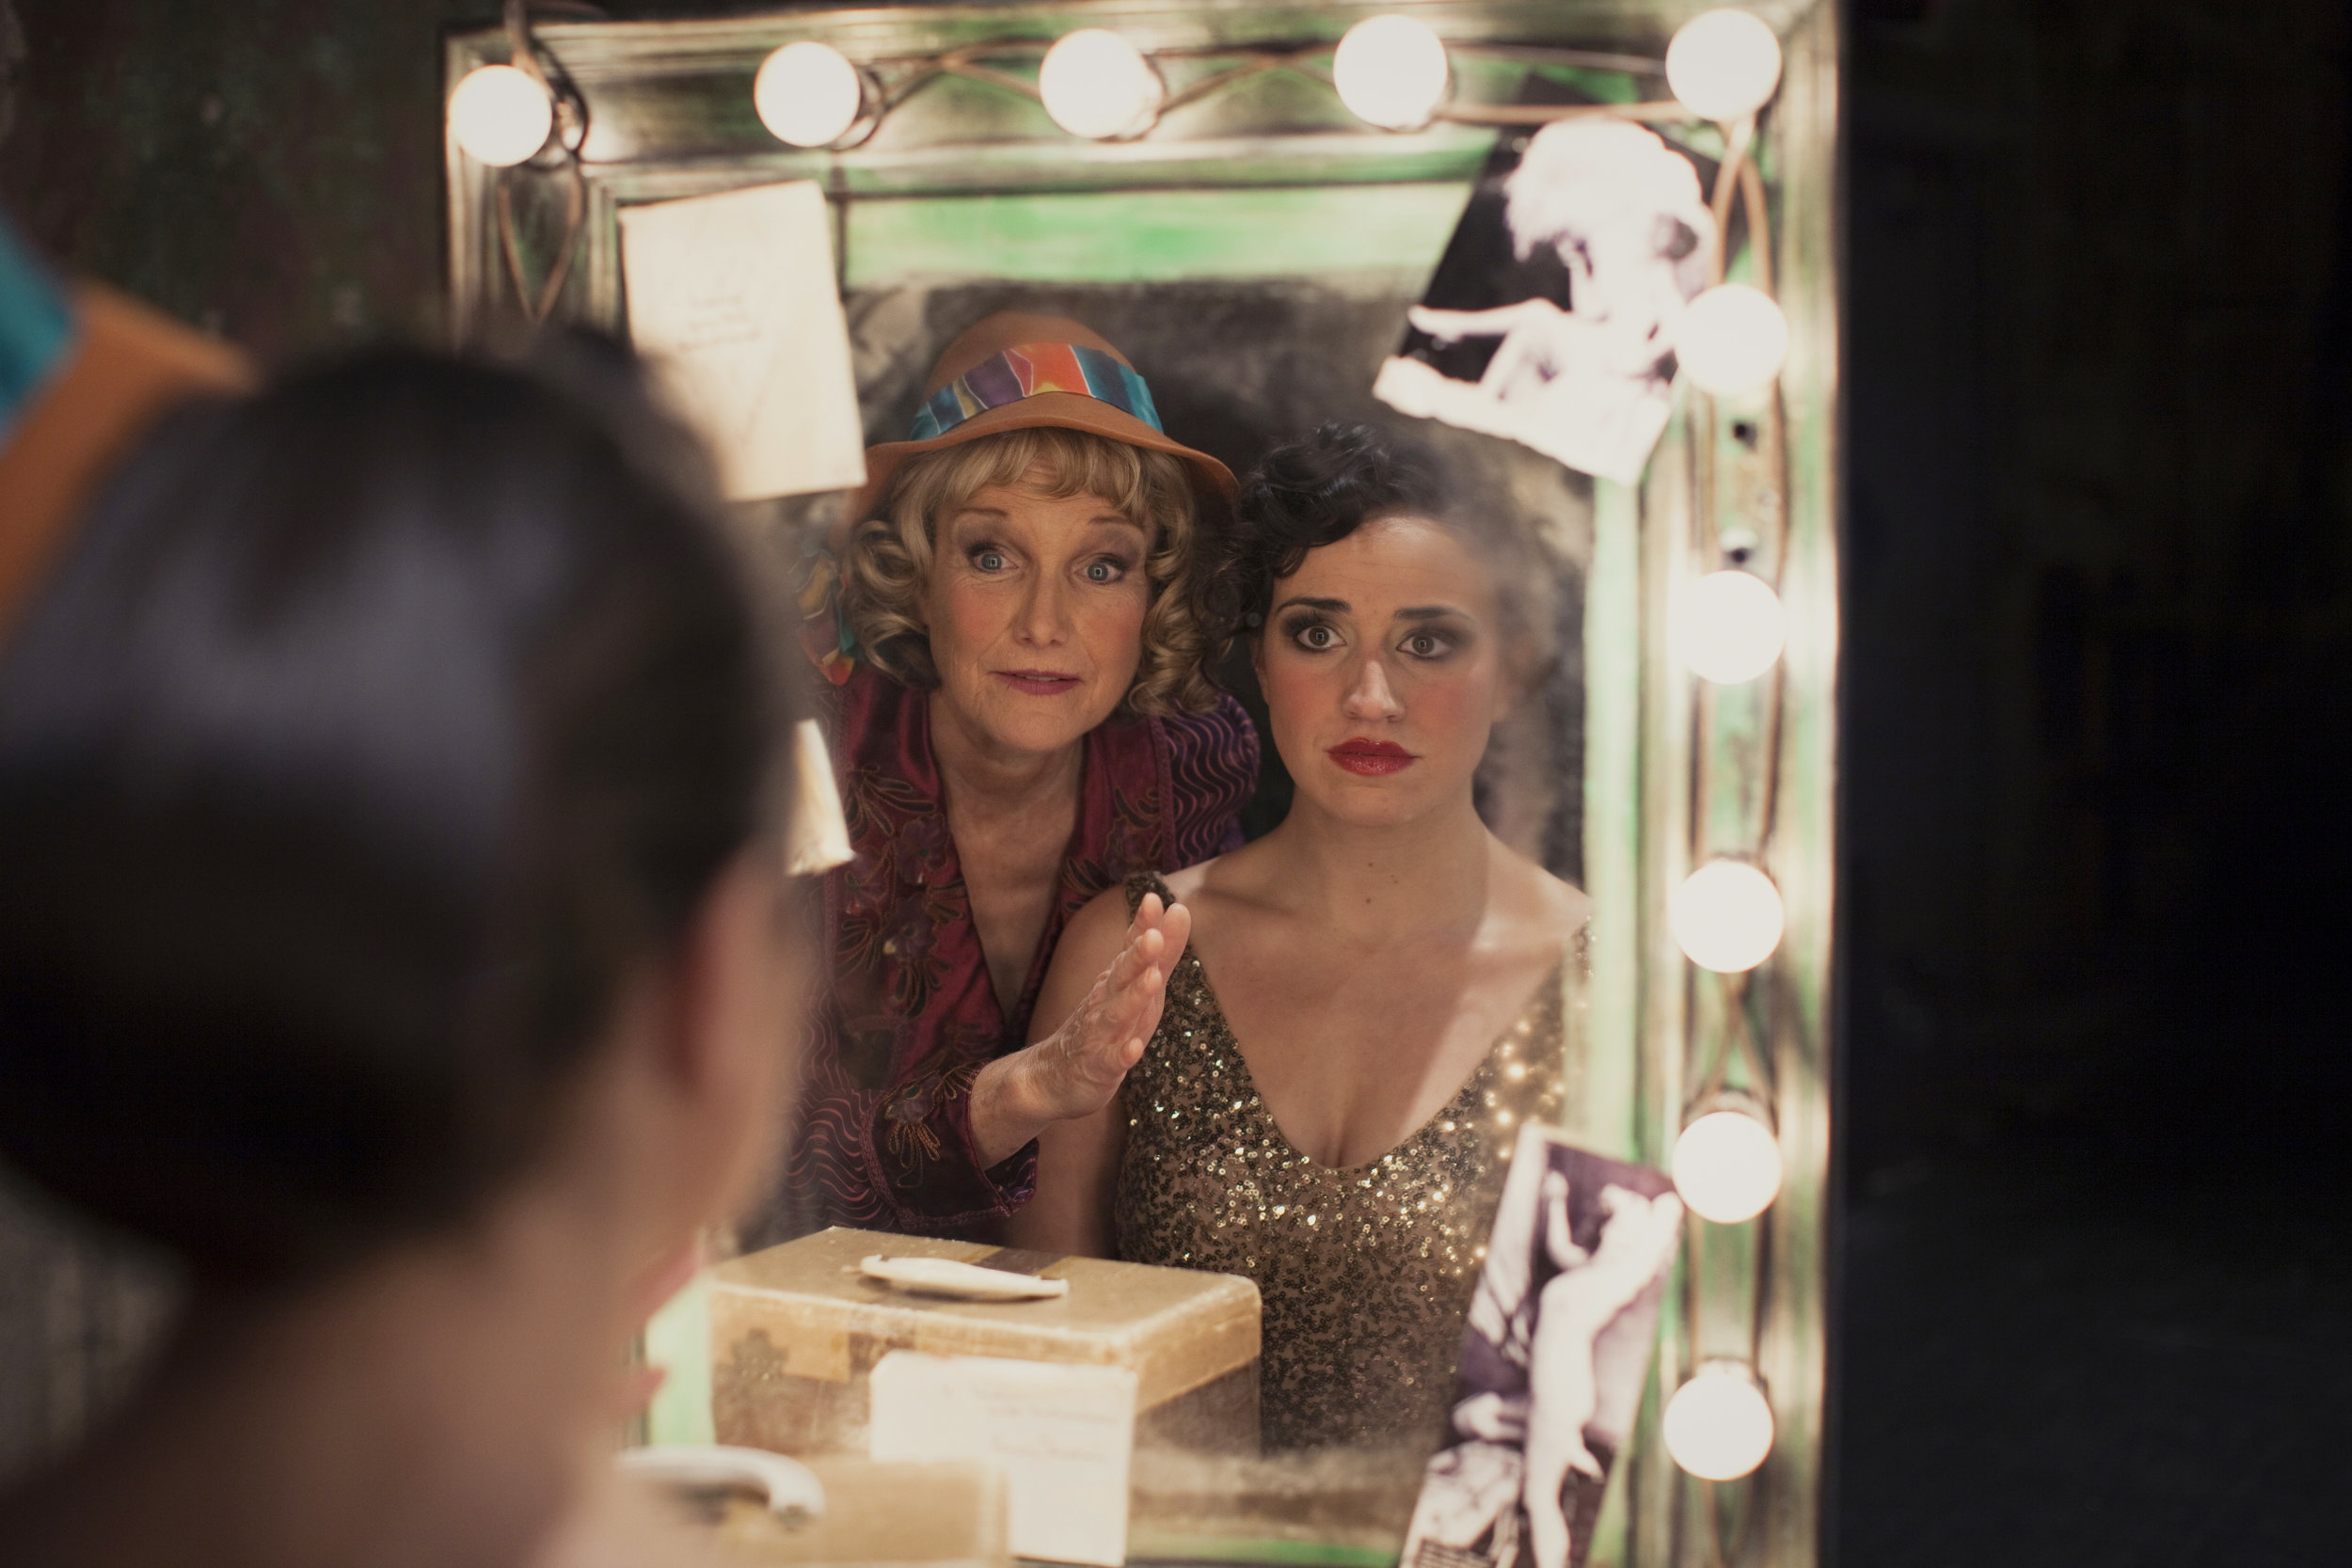 Michelle Barber as Mama Rose and Cat Brindisi as Gypsy Rose Lee, Photo by Joe Dickie